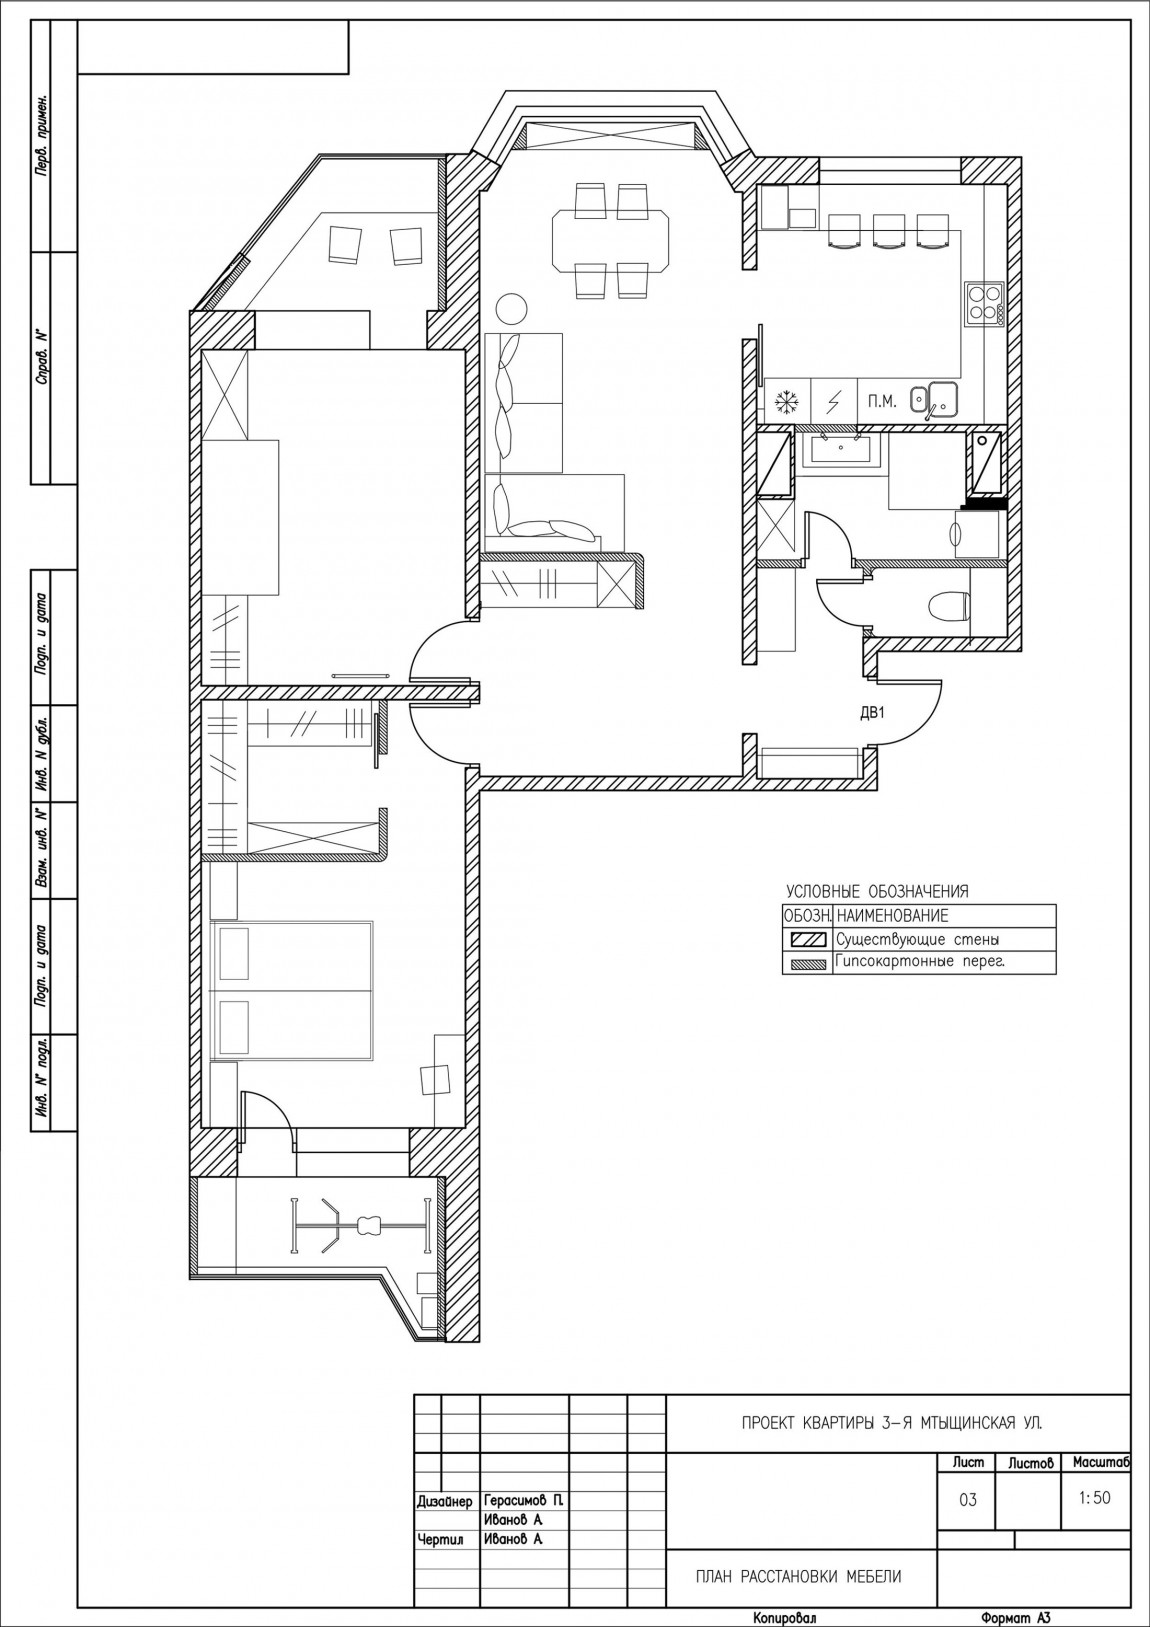 Floor plan of the Scandinavian style Moscow apartment